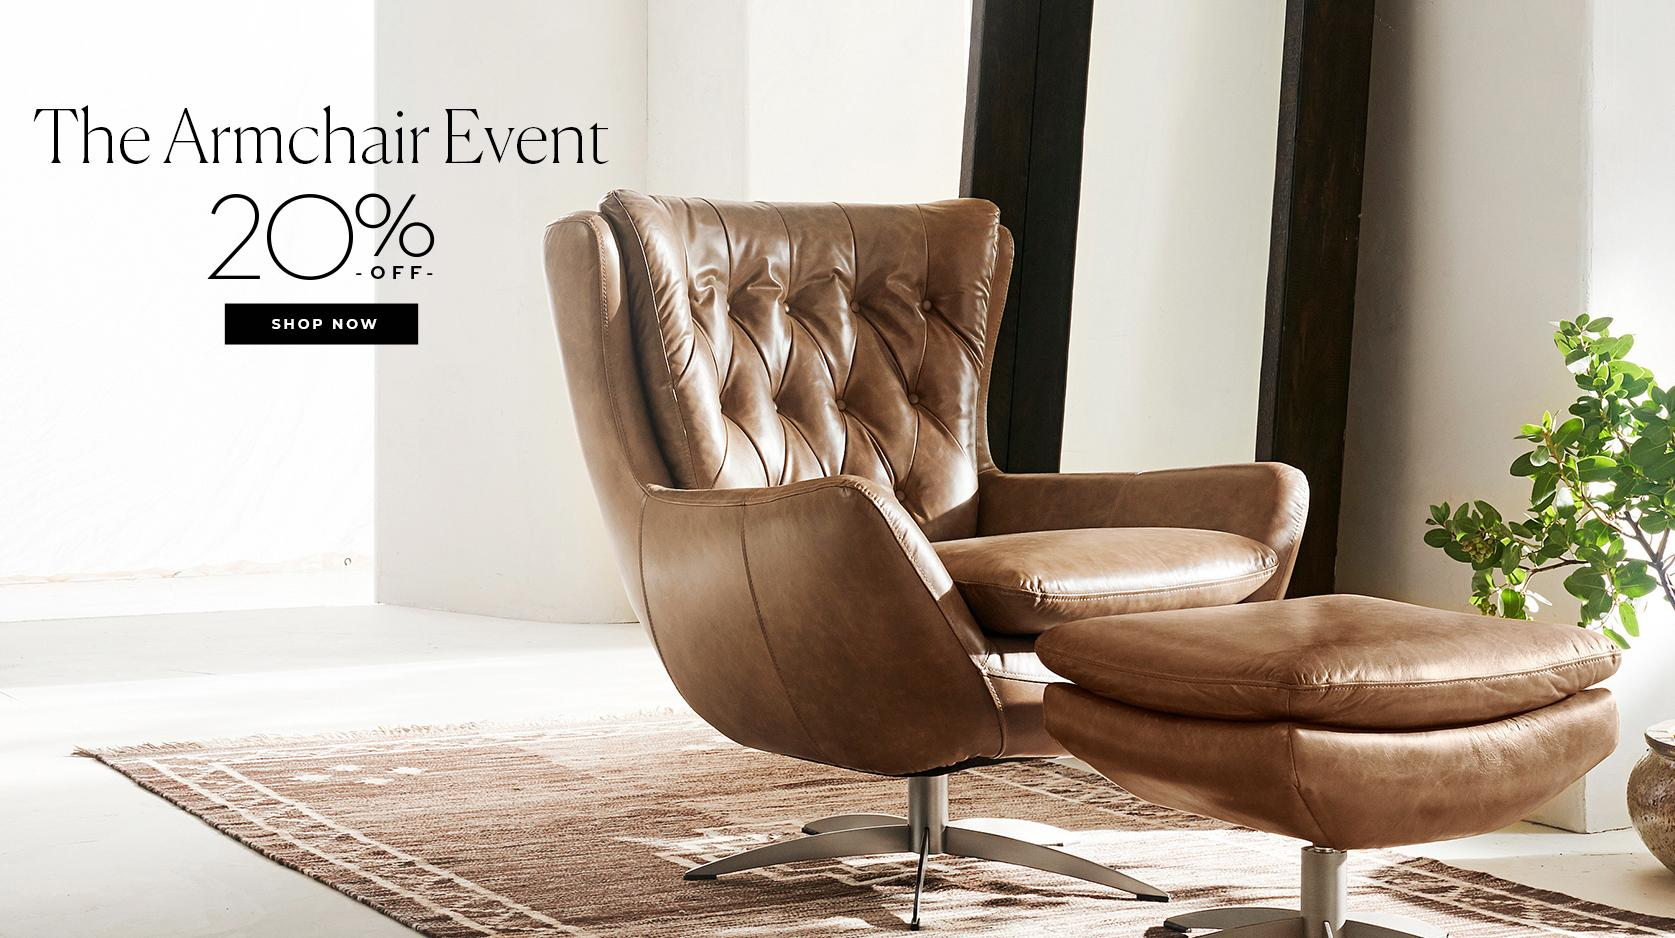 The Armchair Event: 20% off